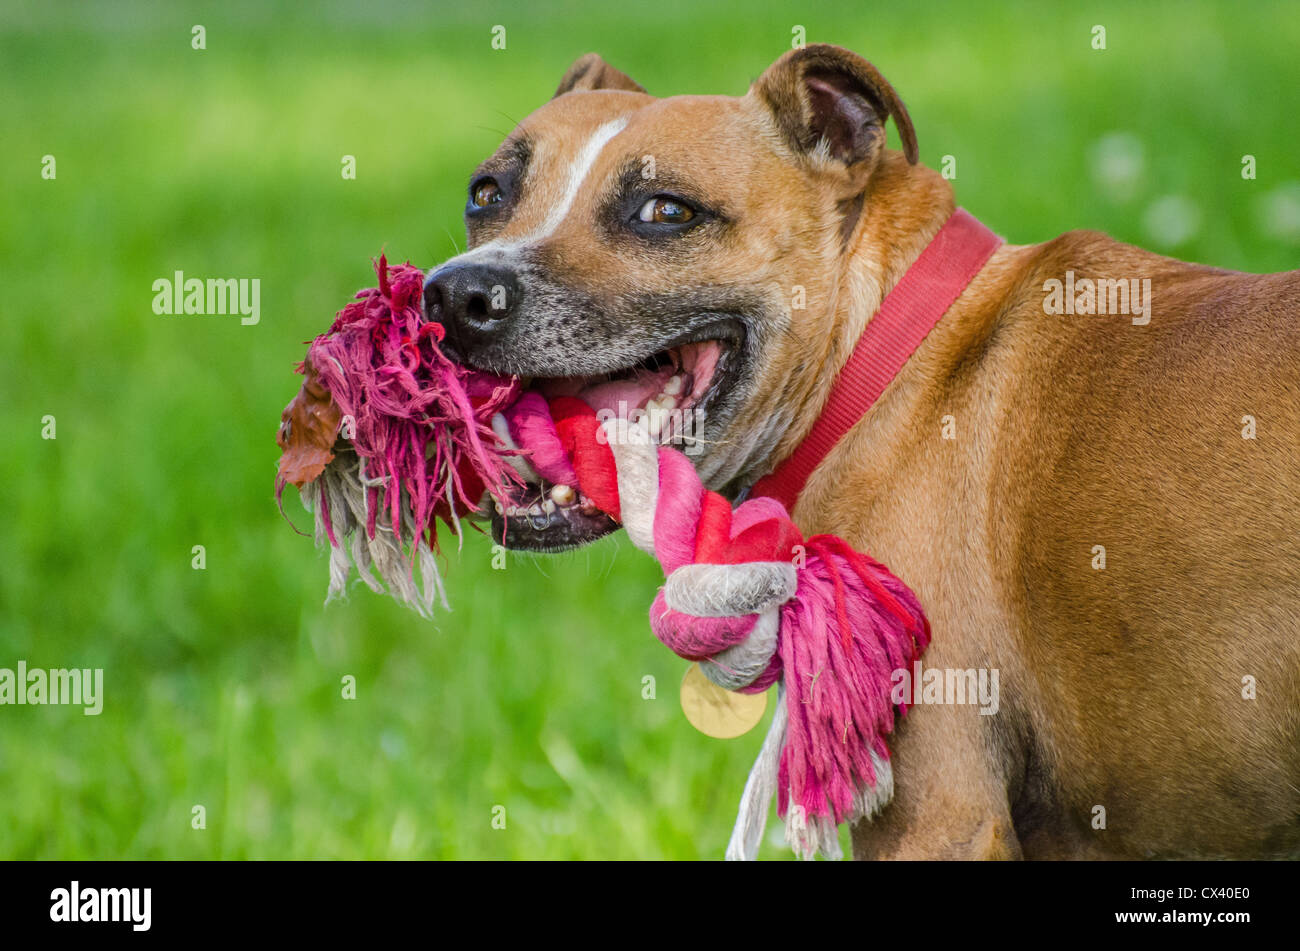 Tan And White Staffy Cross Dog Chewing A Toy - Stock Image